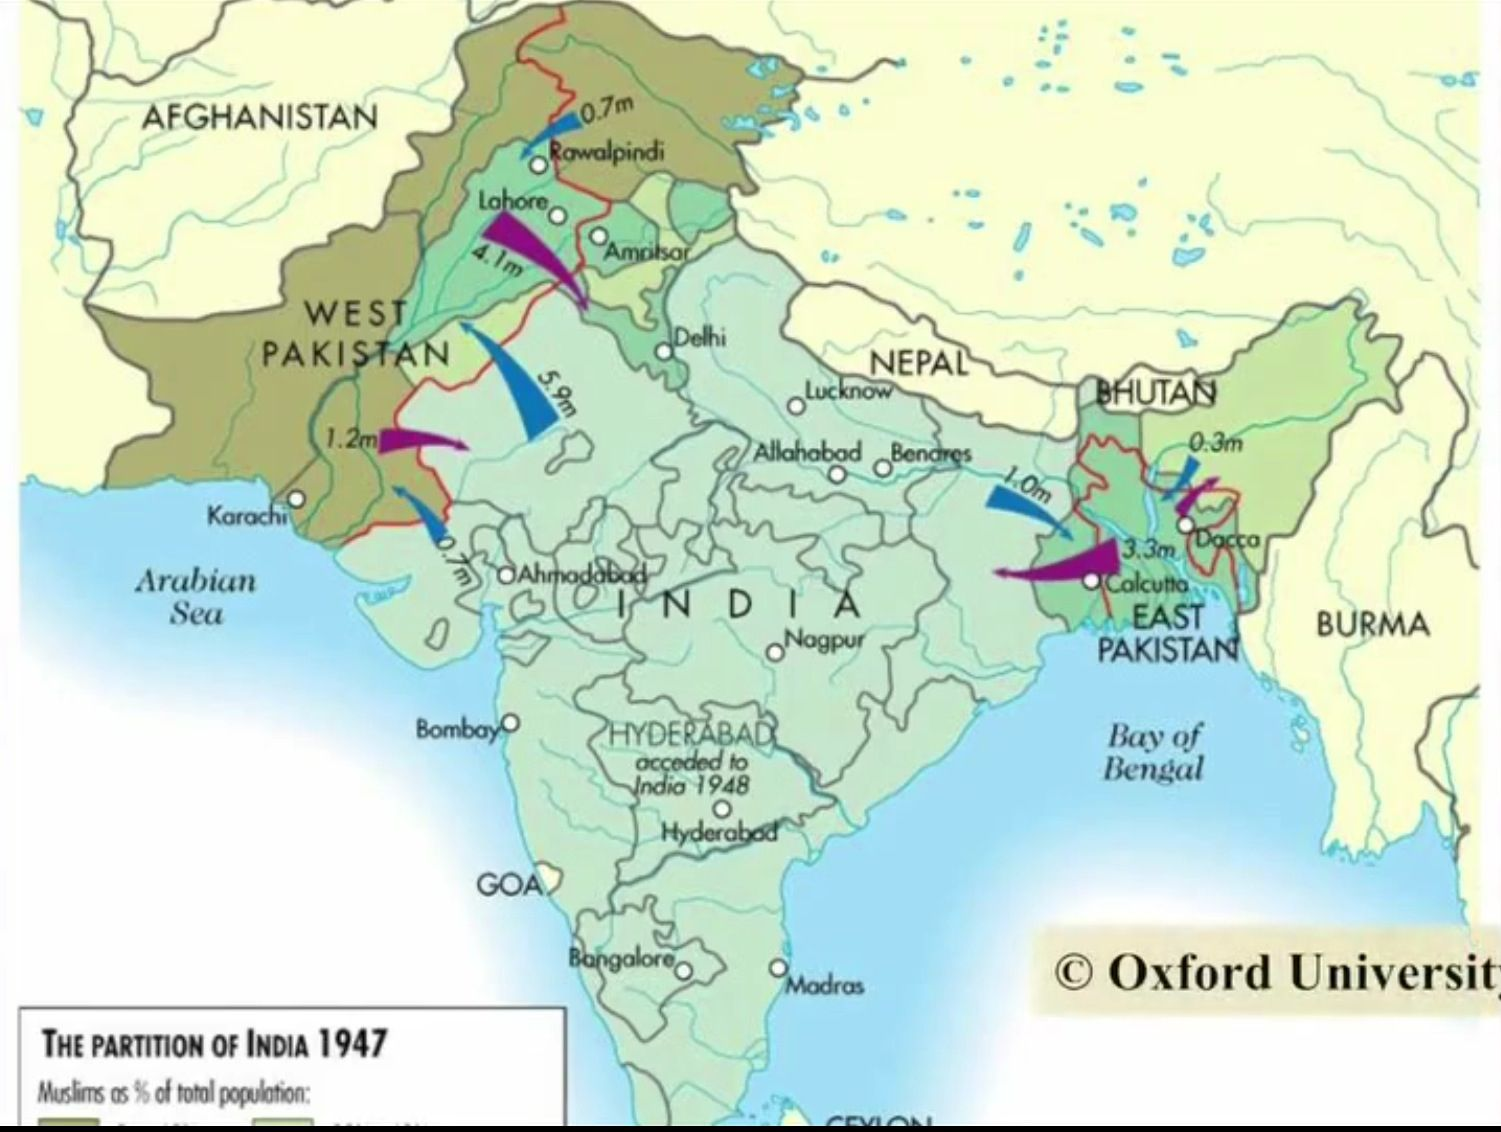 Partition of india 1947